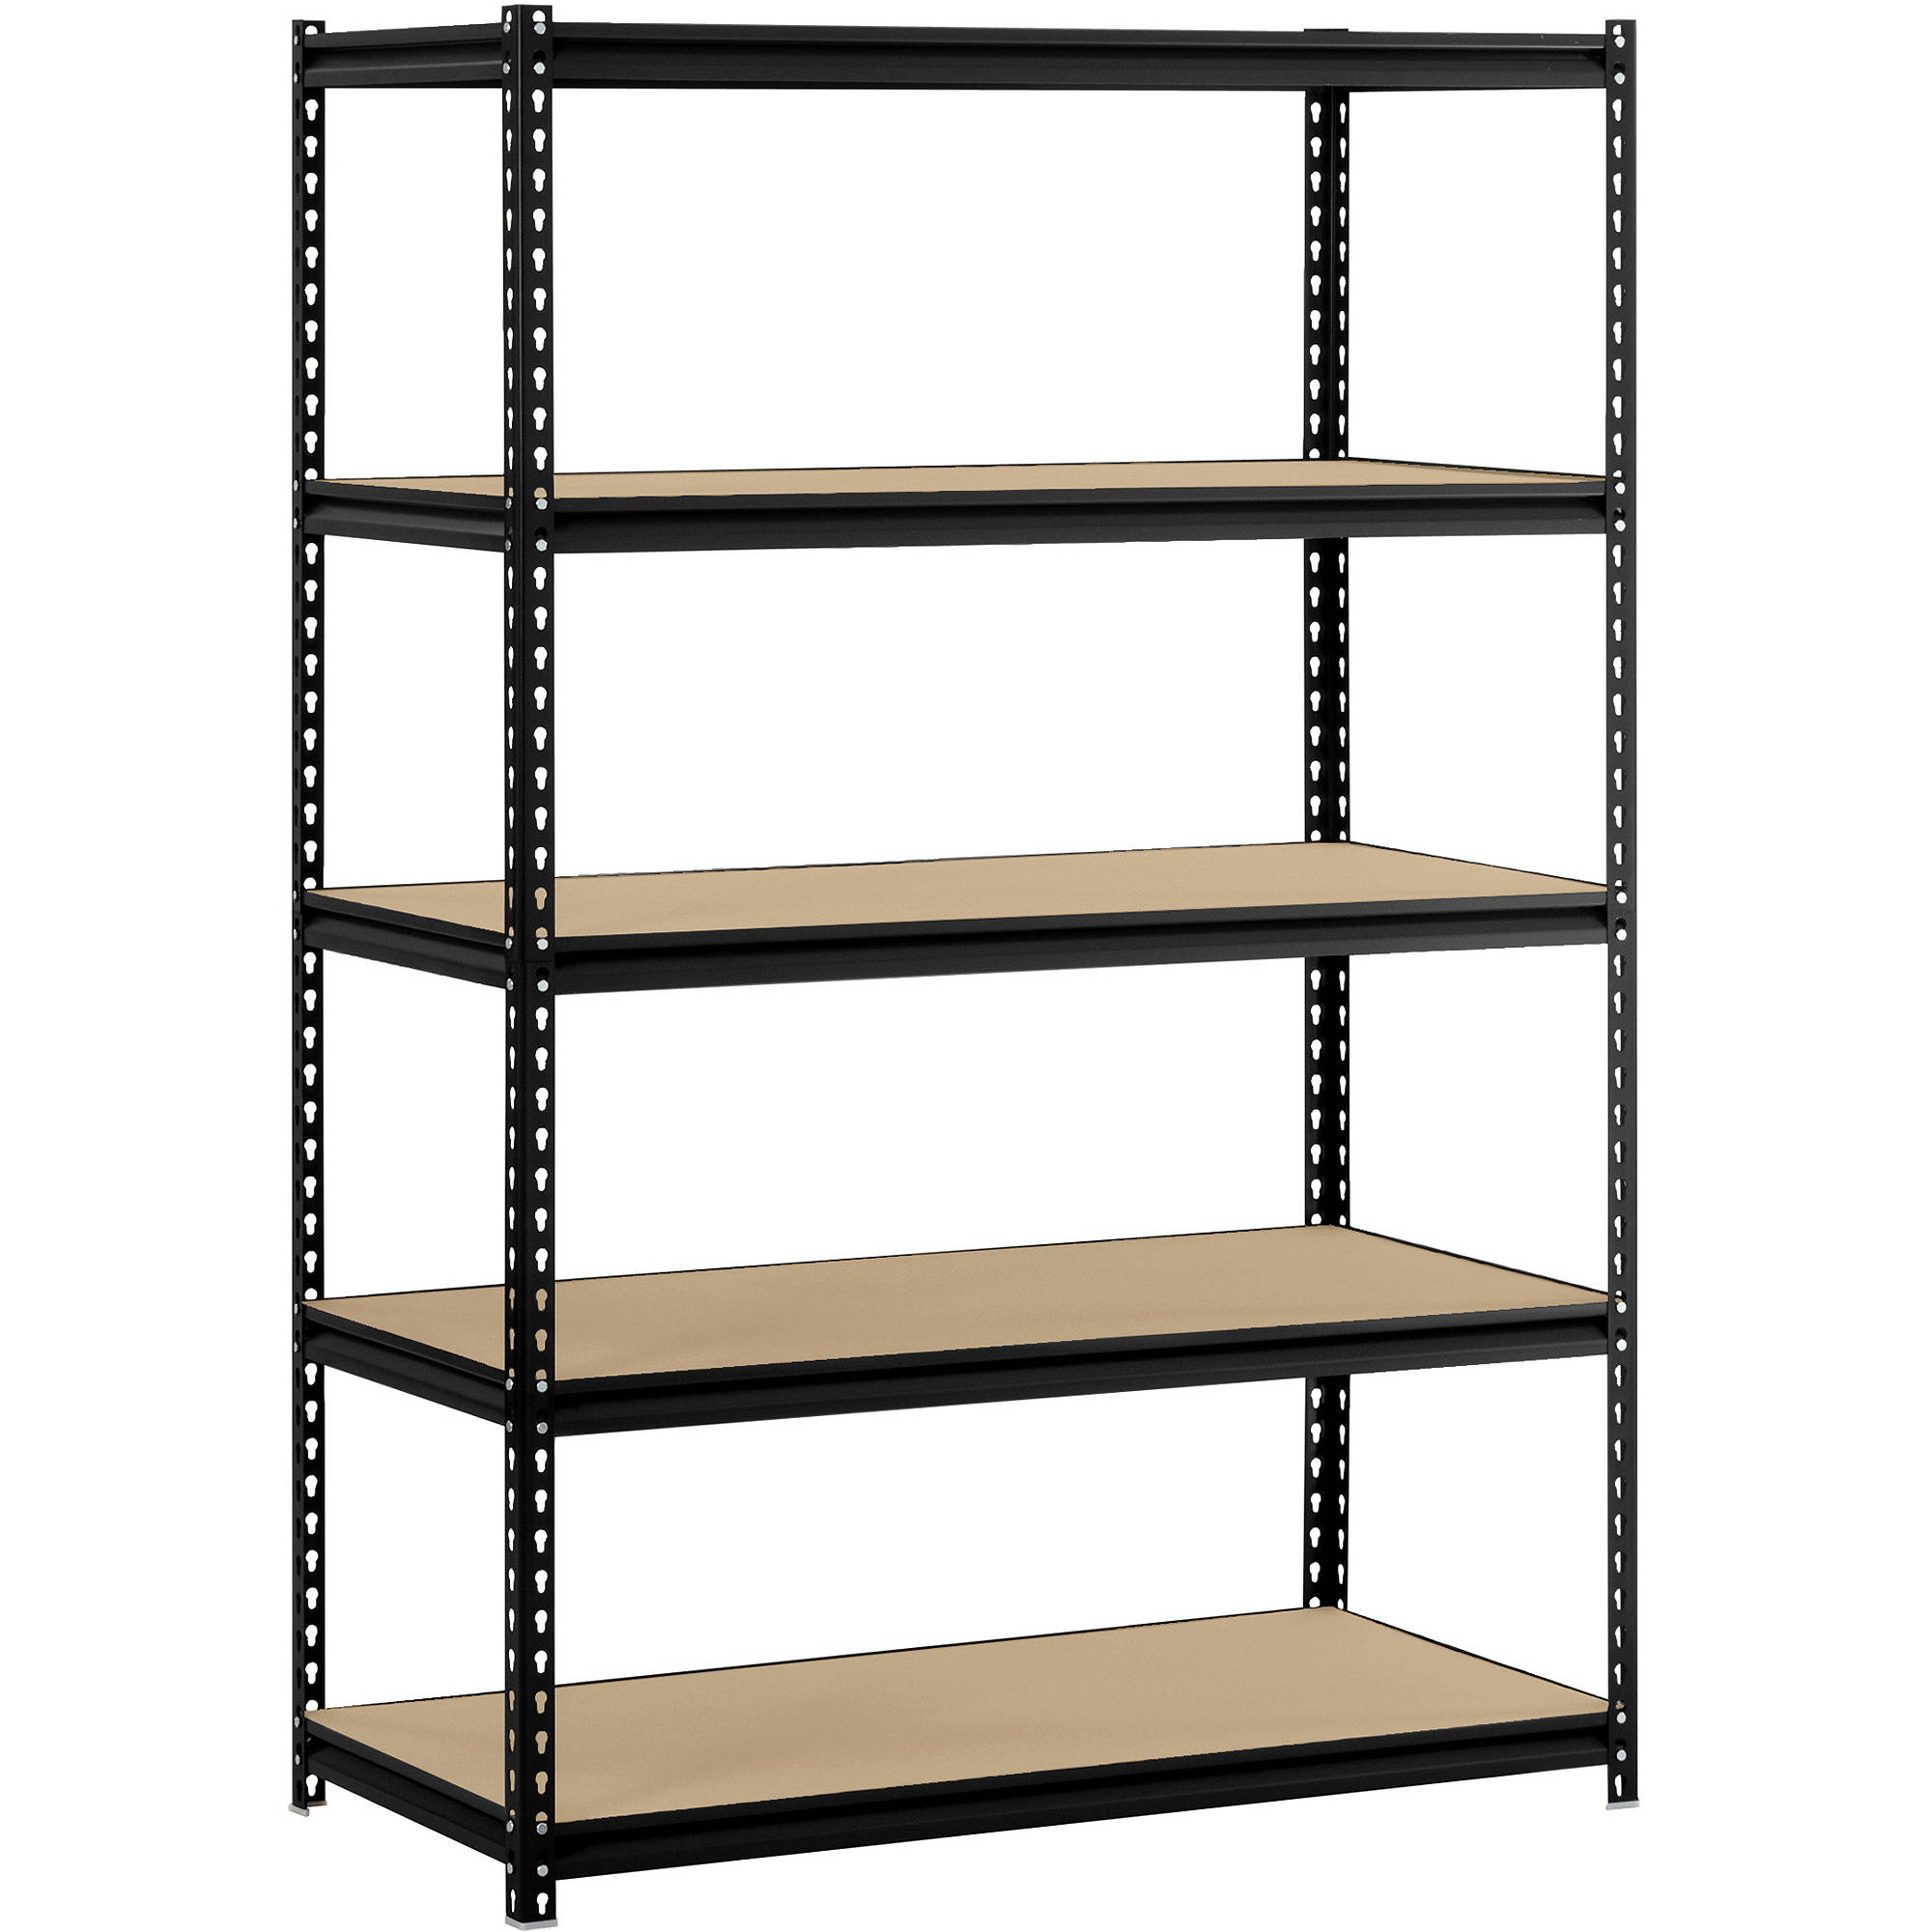 Walmart Wood Shelves | Walmart Shelving | Corner Shelf Walmart